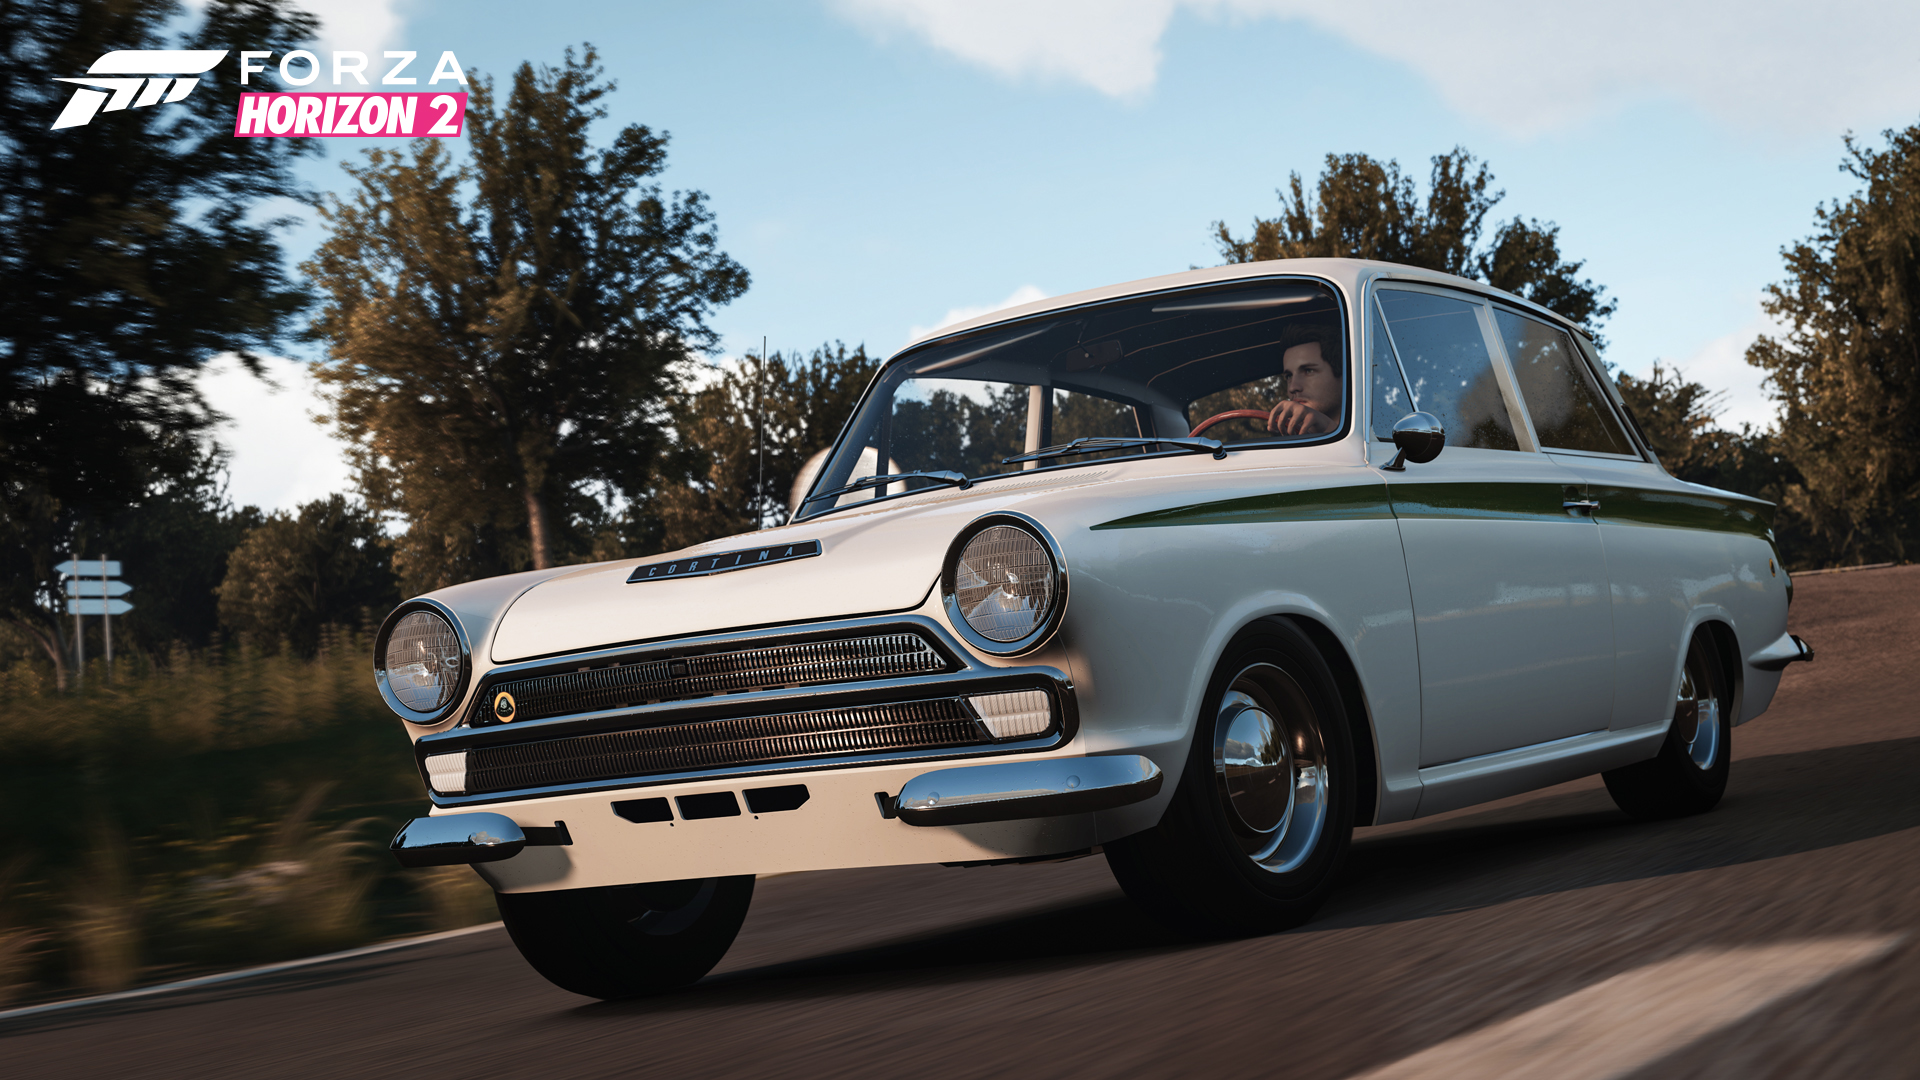 You Can Now Download The Top Gear Car Pack For Forza